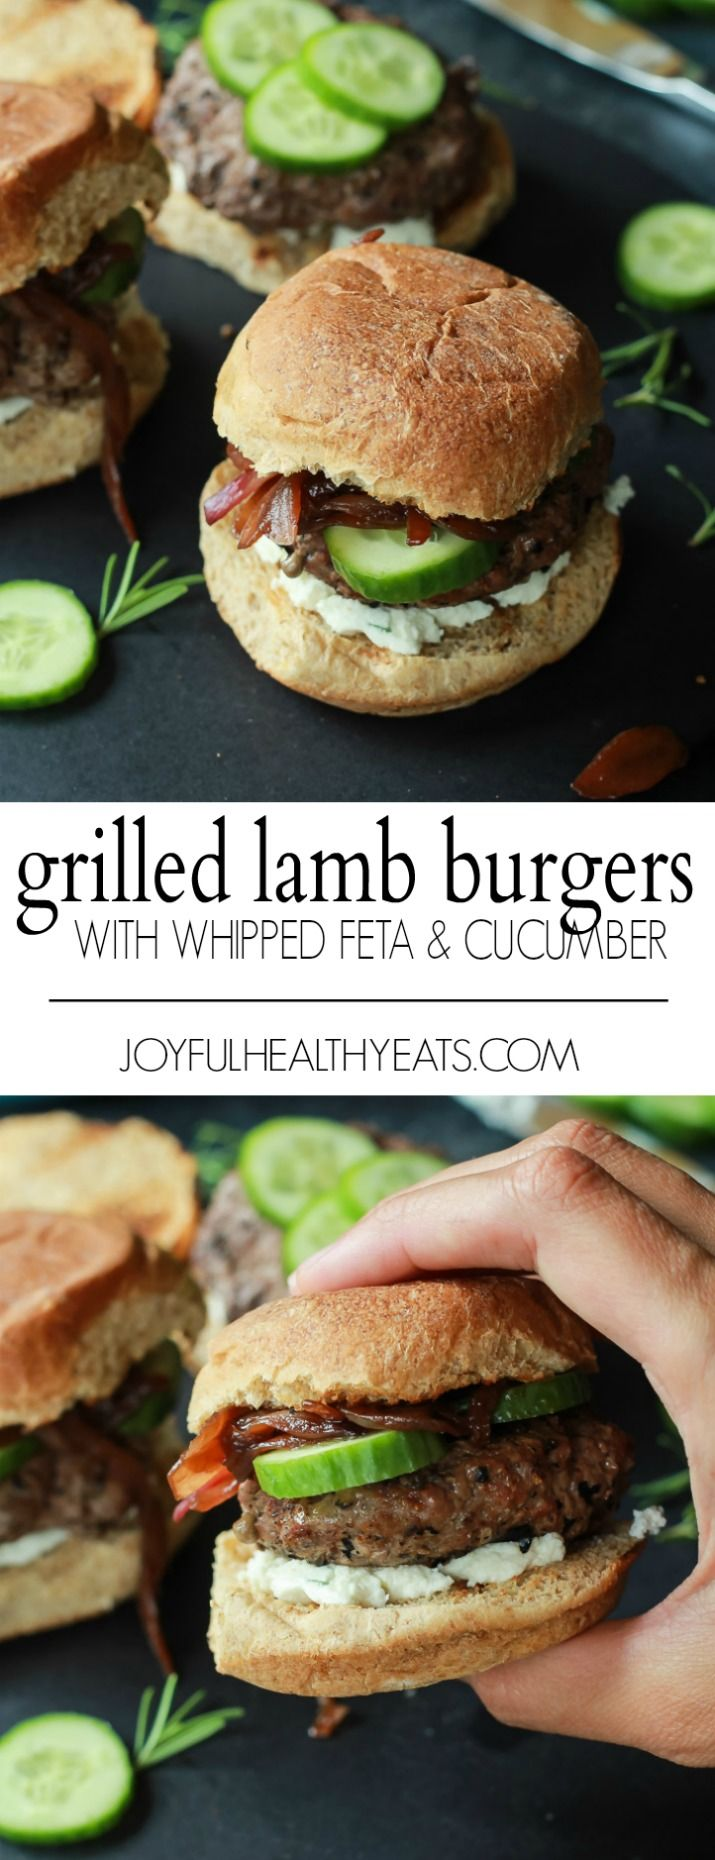 Grilled Lamb Burgers will be the star of all burger recipes this summer, topped with whipped feta cheese, cucumber, and balsamic caramelized onions. Filled with flavor and made in 30 minutes! | joyfulhealthyeats.com